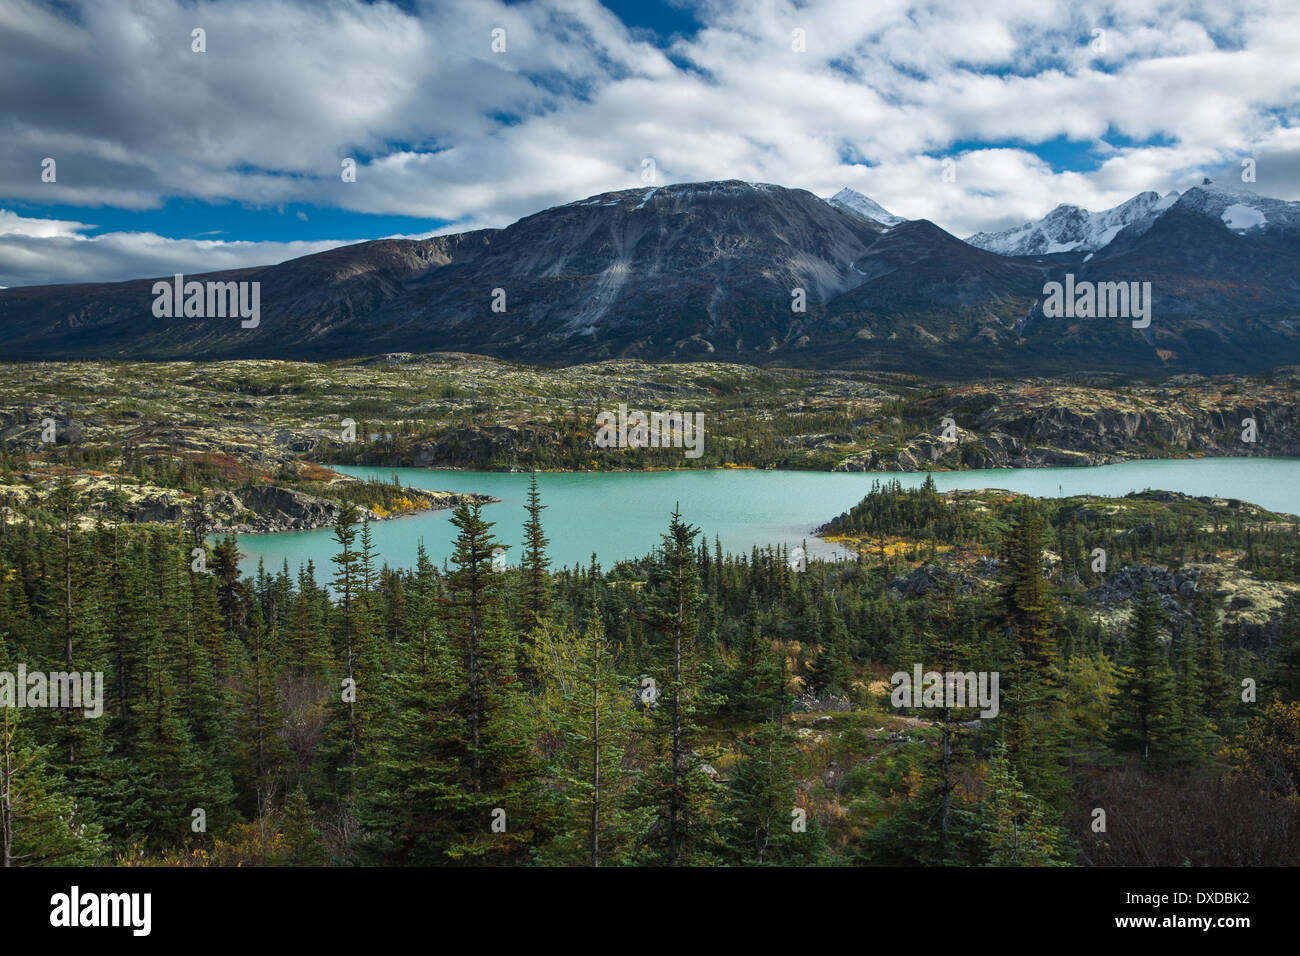 alpine meadows around Fraser, South Klondike Highway, British Columbia, Canada - Stock Image